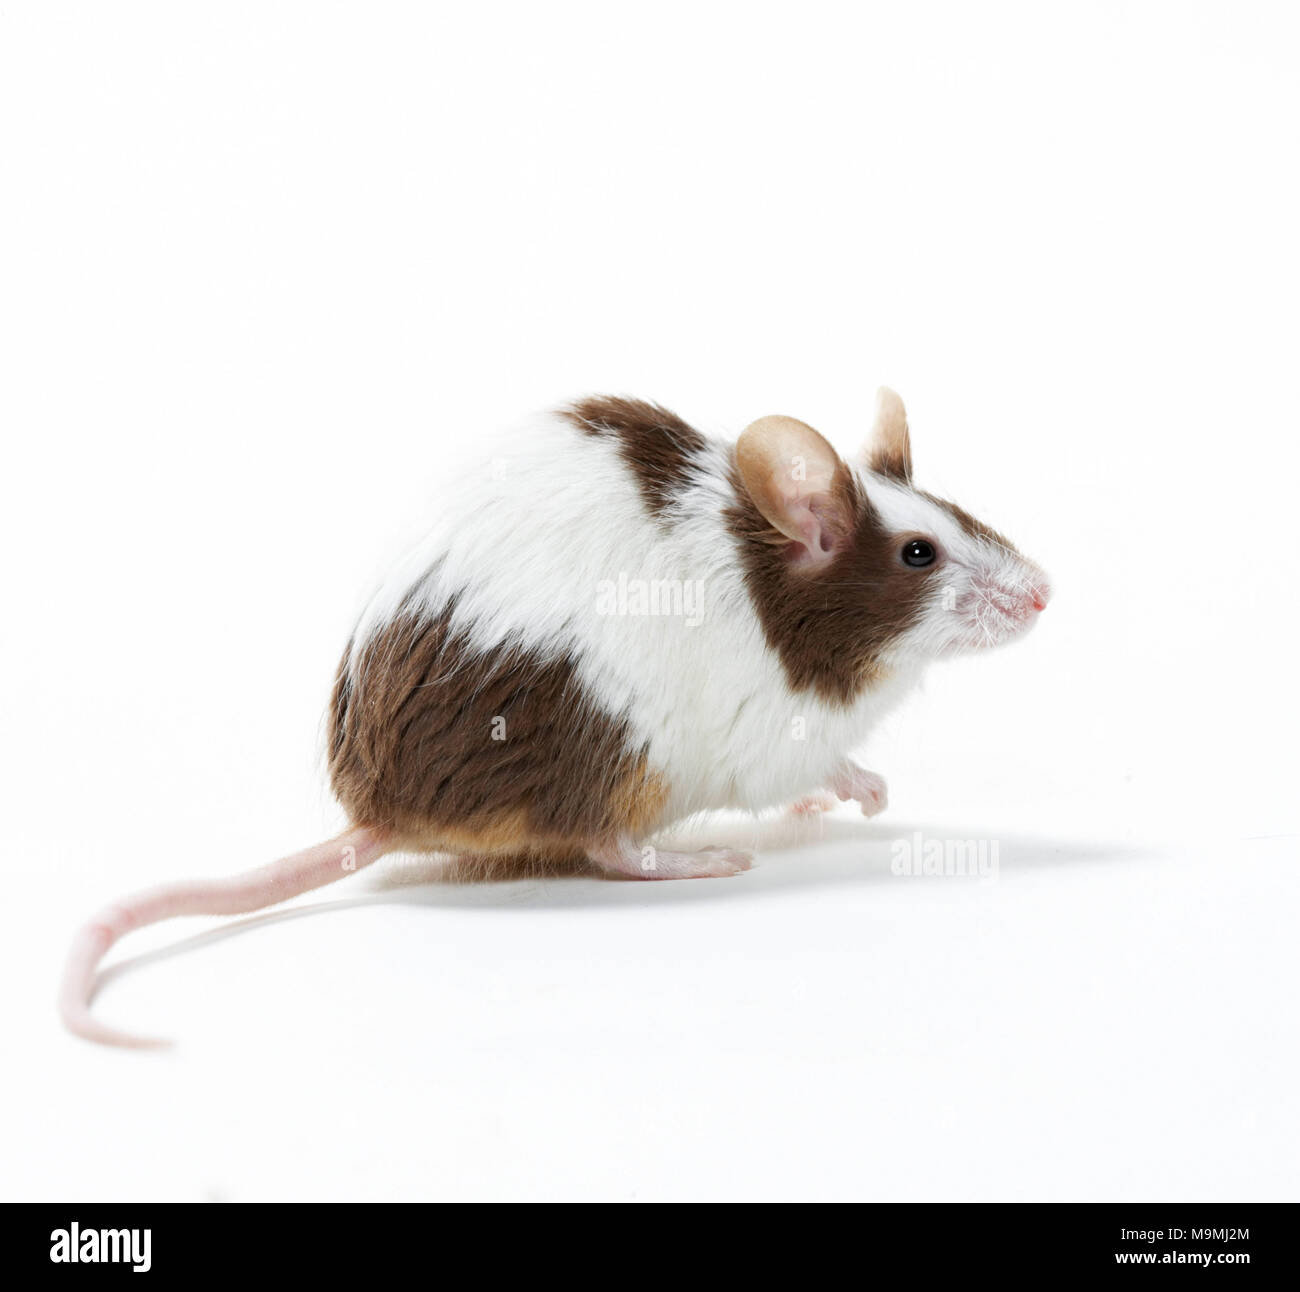 Fancy Mouse. Bicoloured adult sitting on its haunches. Studio picture against a white background Stock Photo